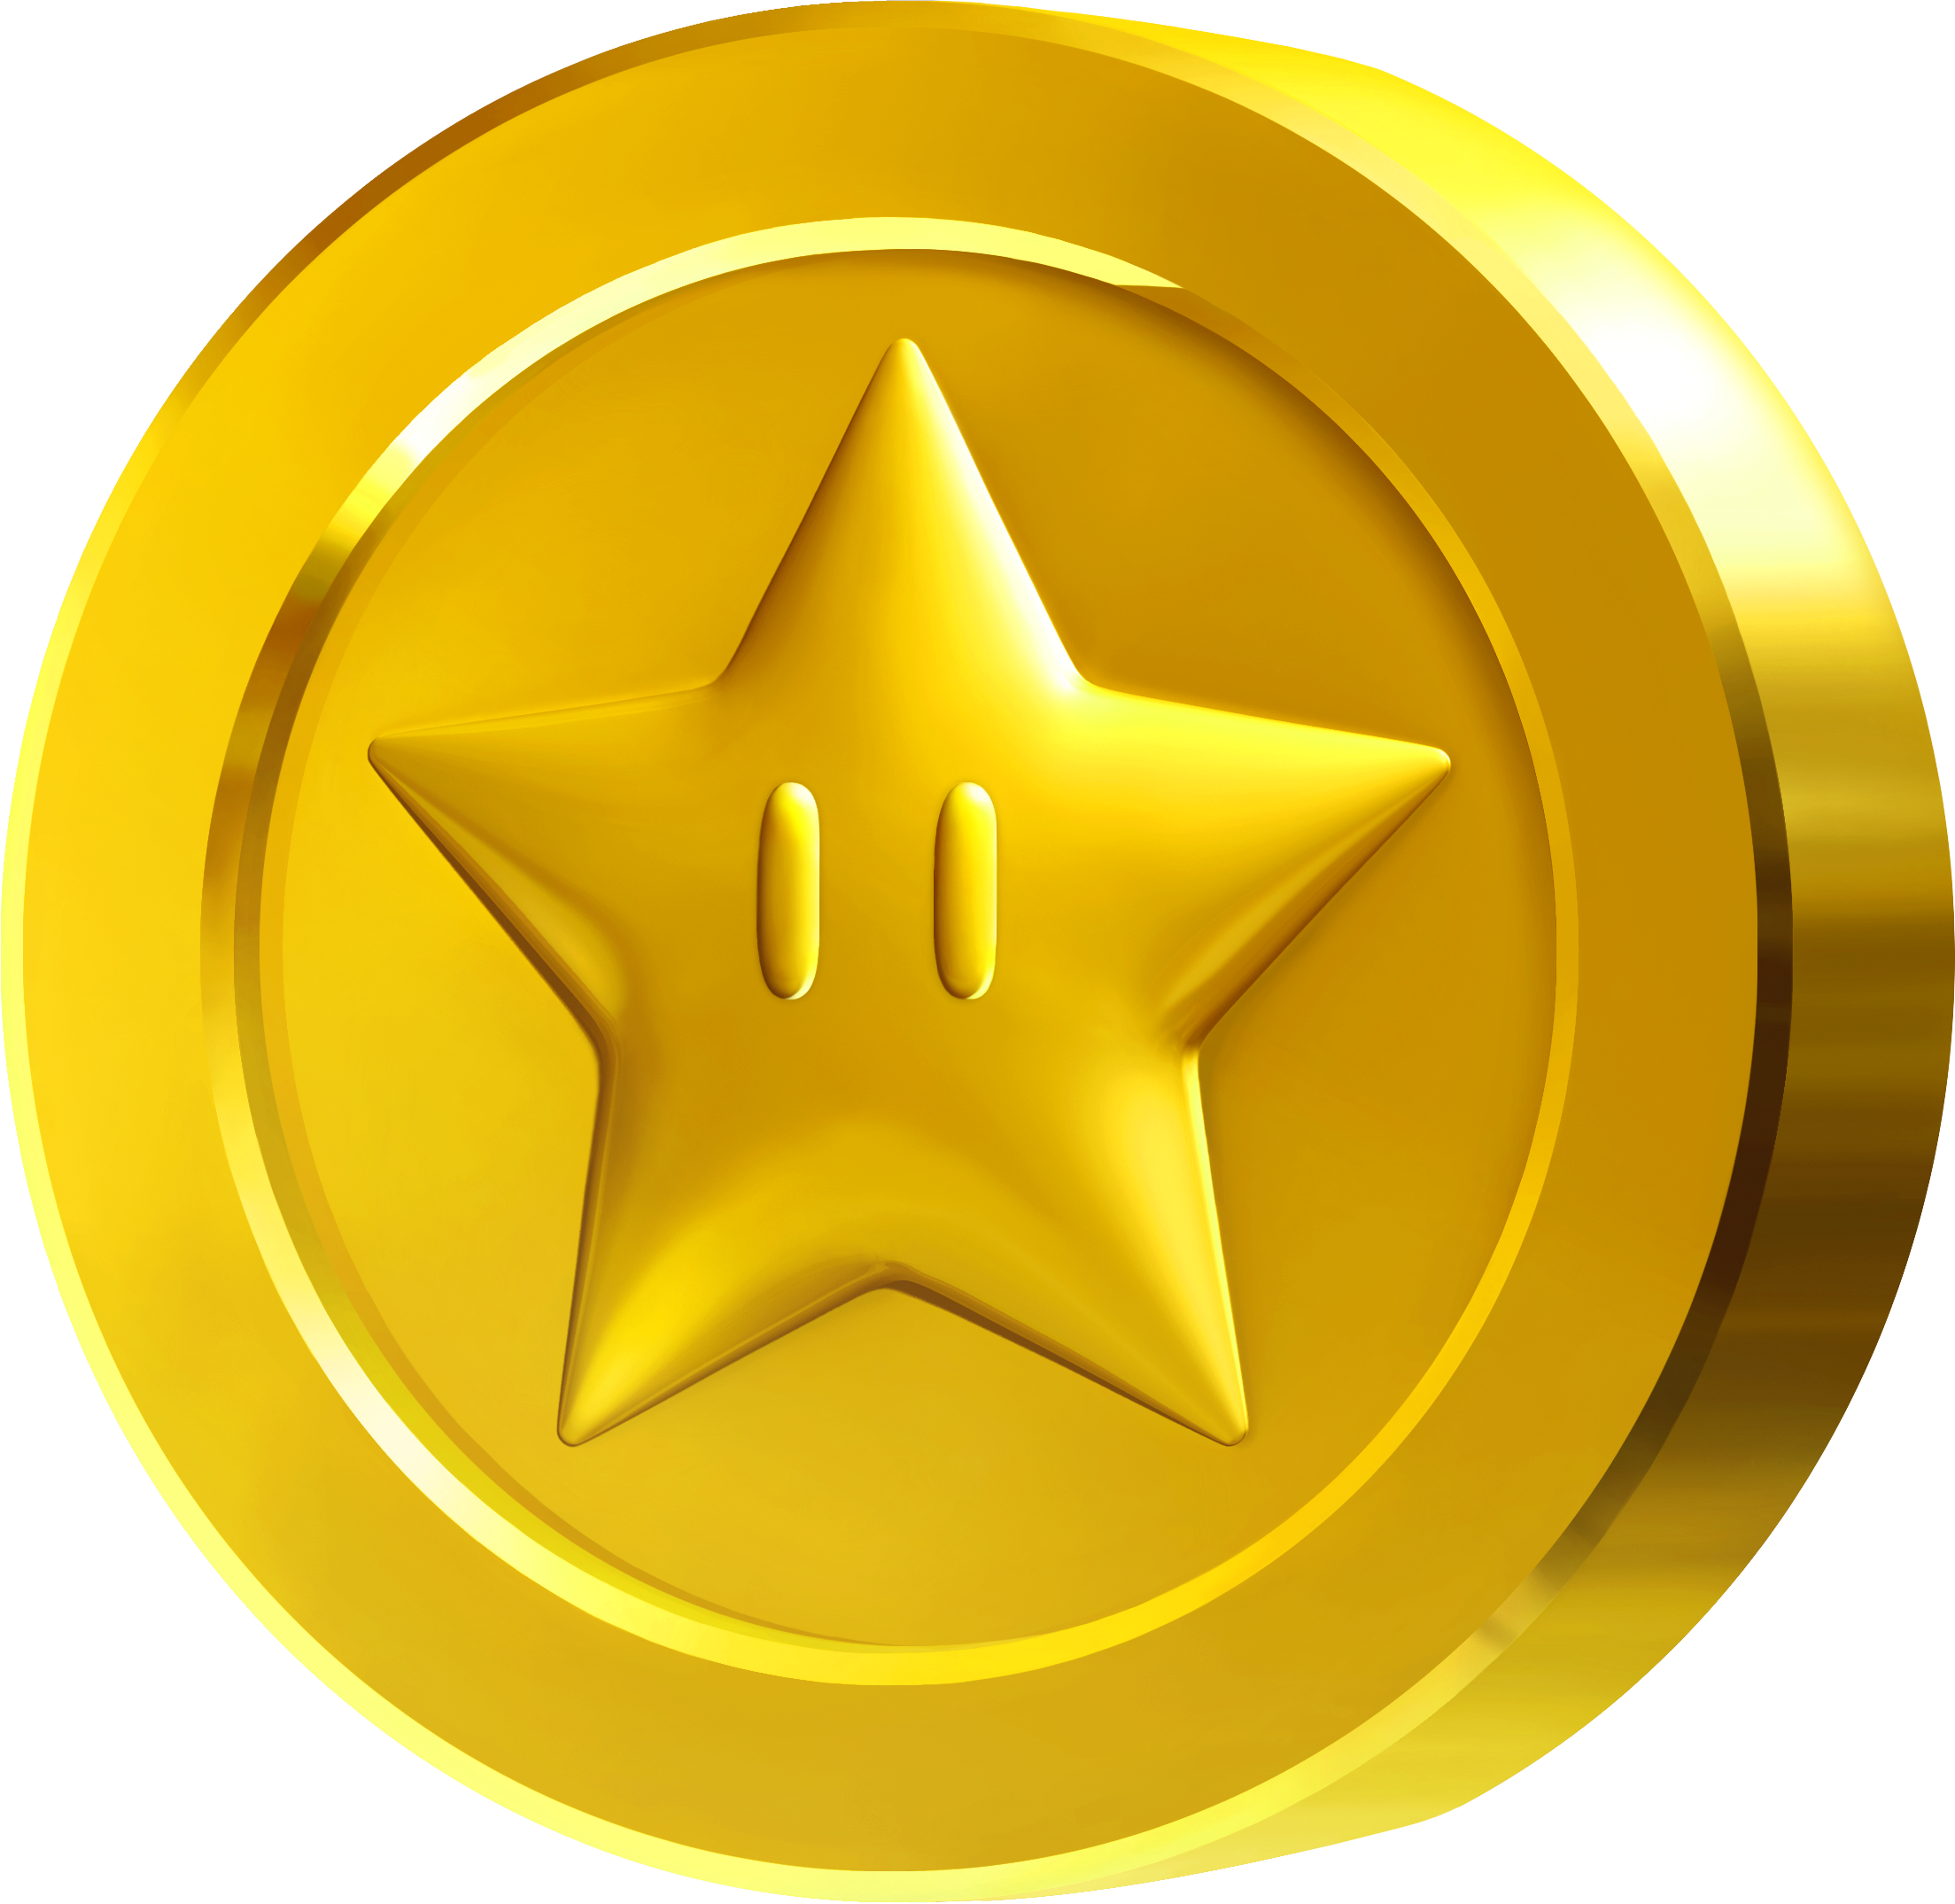 Animated gold star clipart banner free stock Super Mario Clipart Free at GetDrawings.com | Free for personal use ... banner free stock